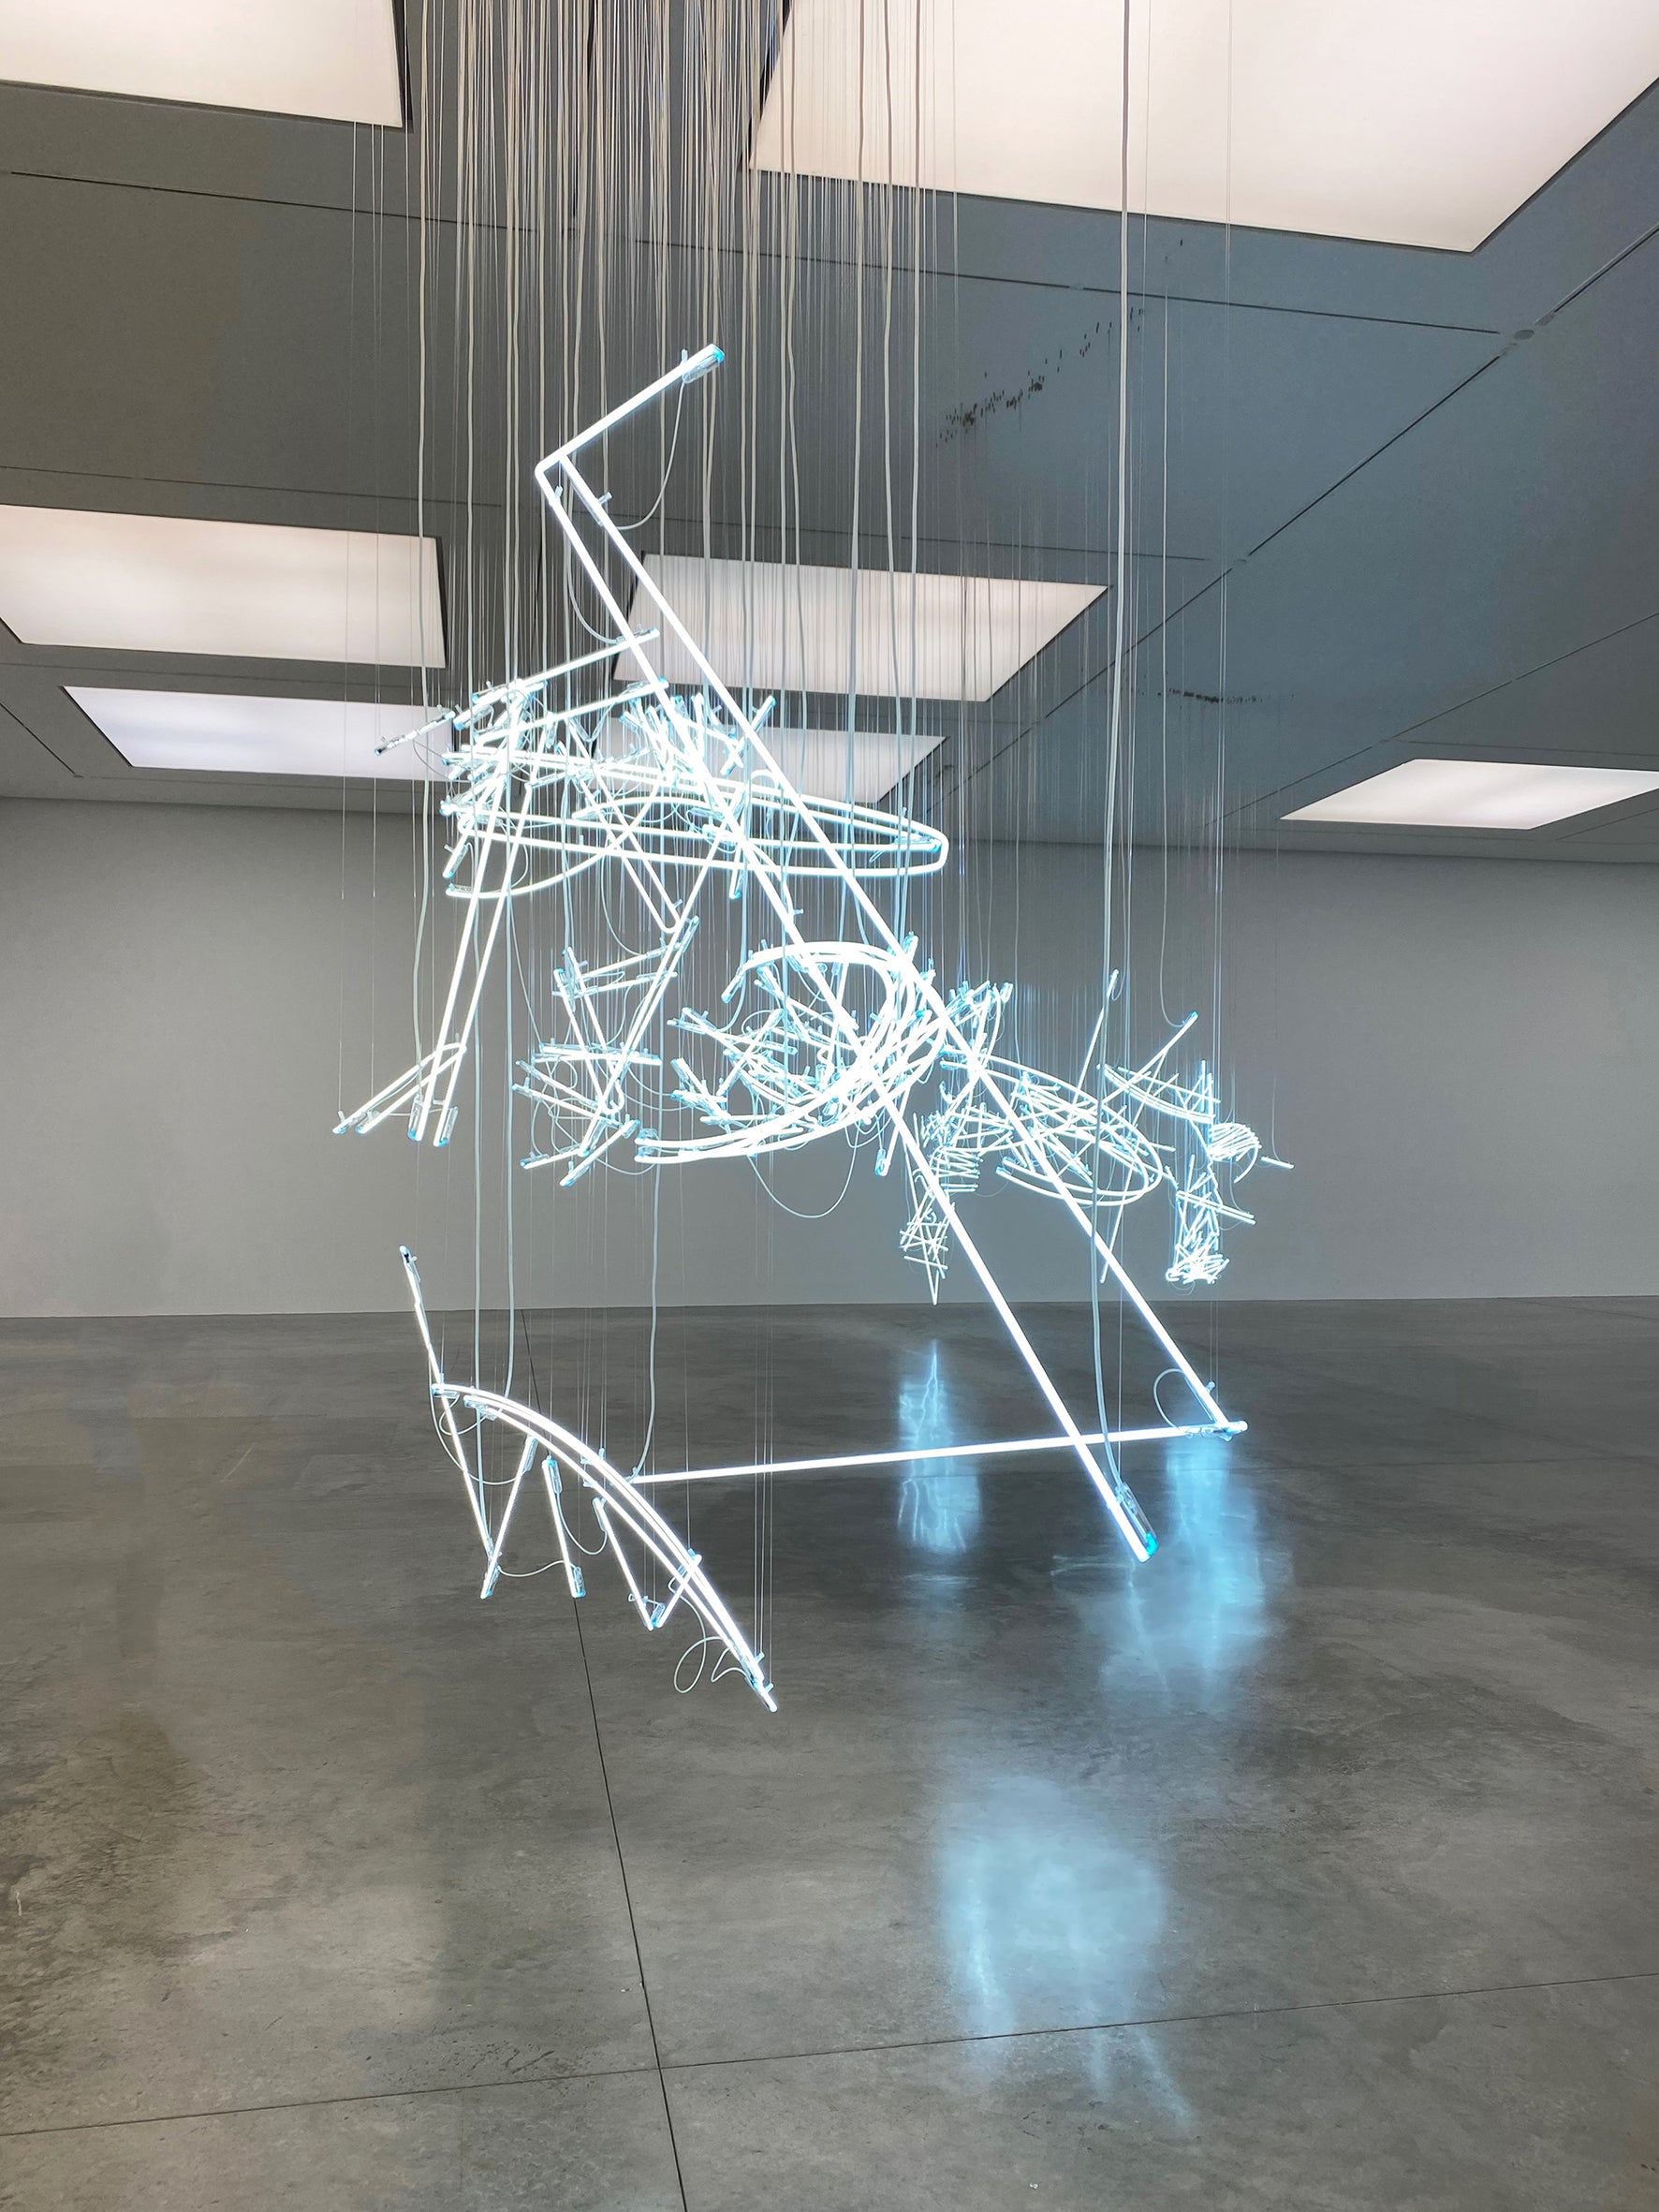 Cerith Wyn Evans No realm of thought… No field of vision exhibiting at the White Cube Gallery, Bermondsey